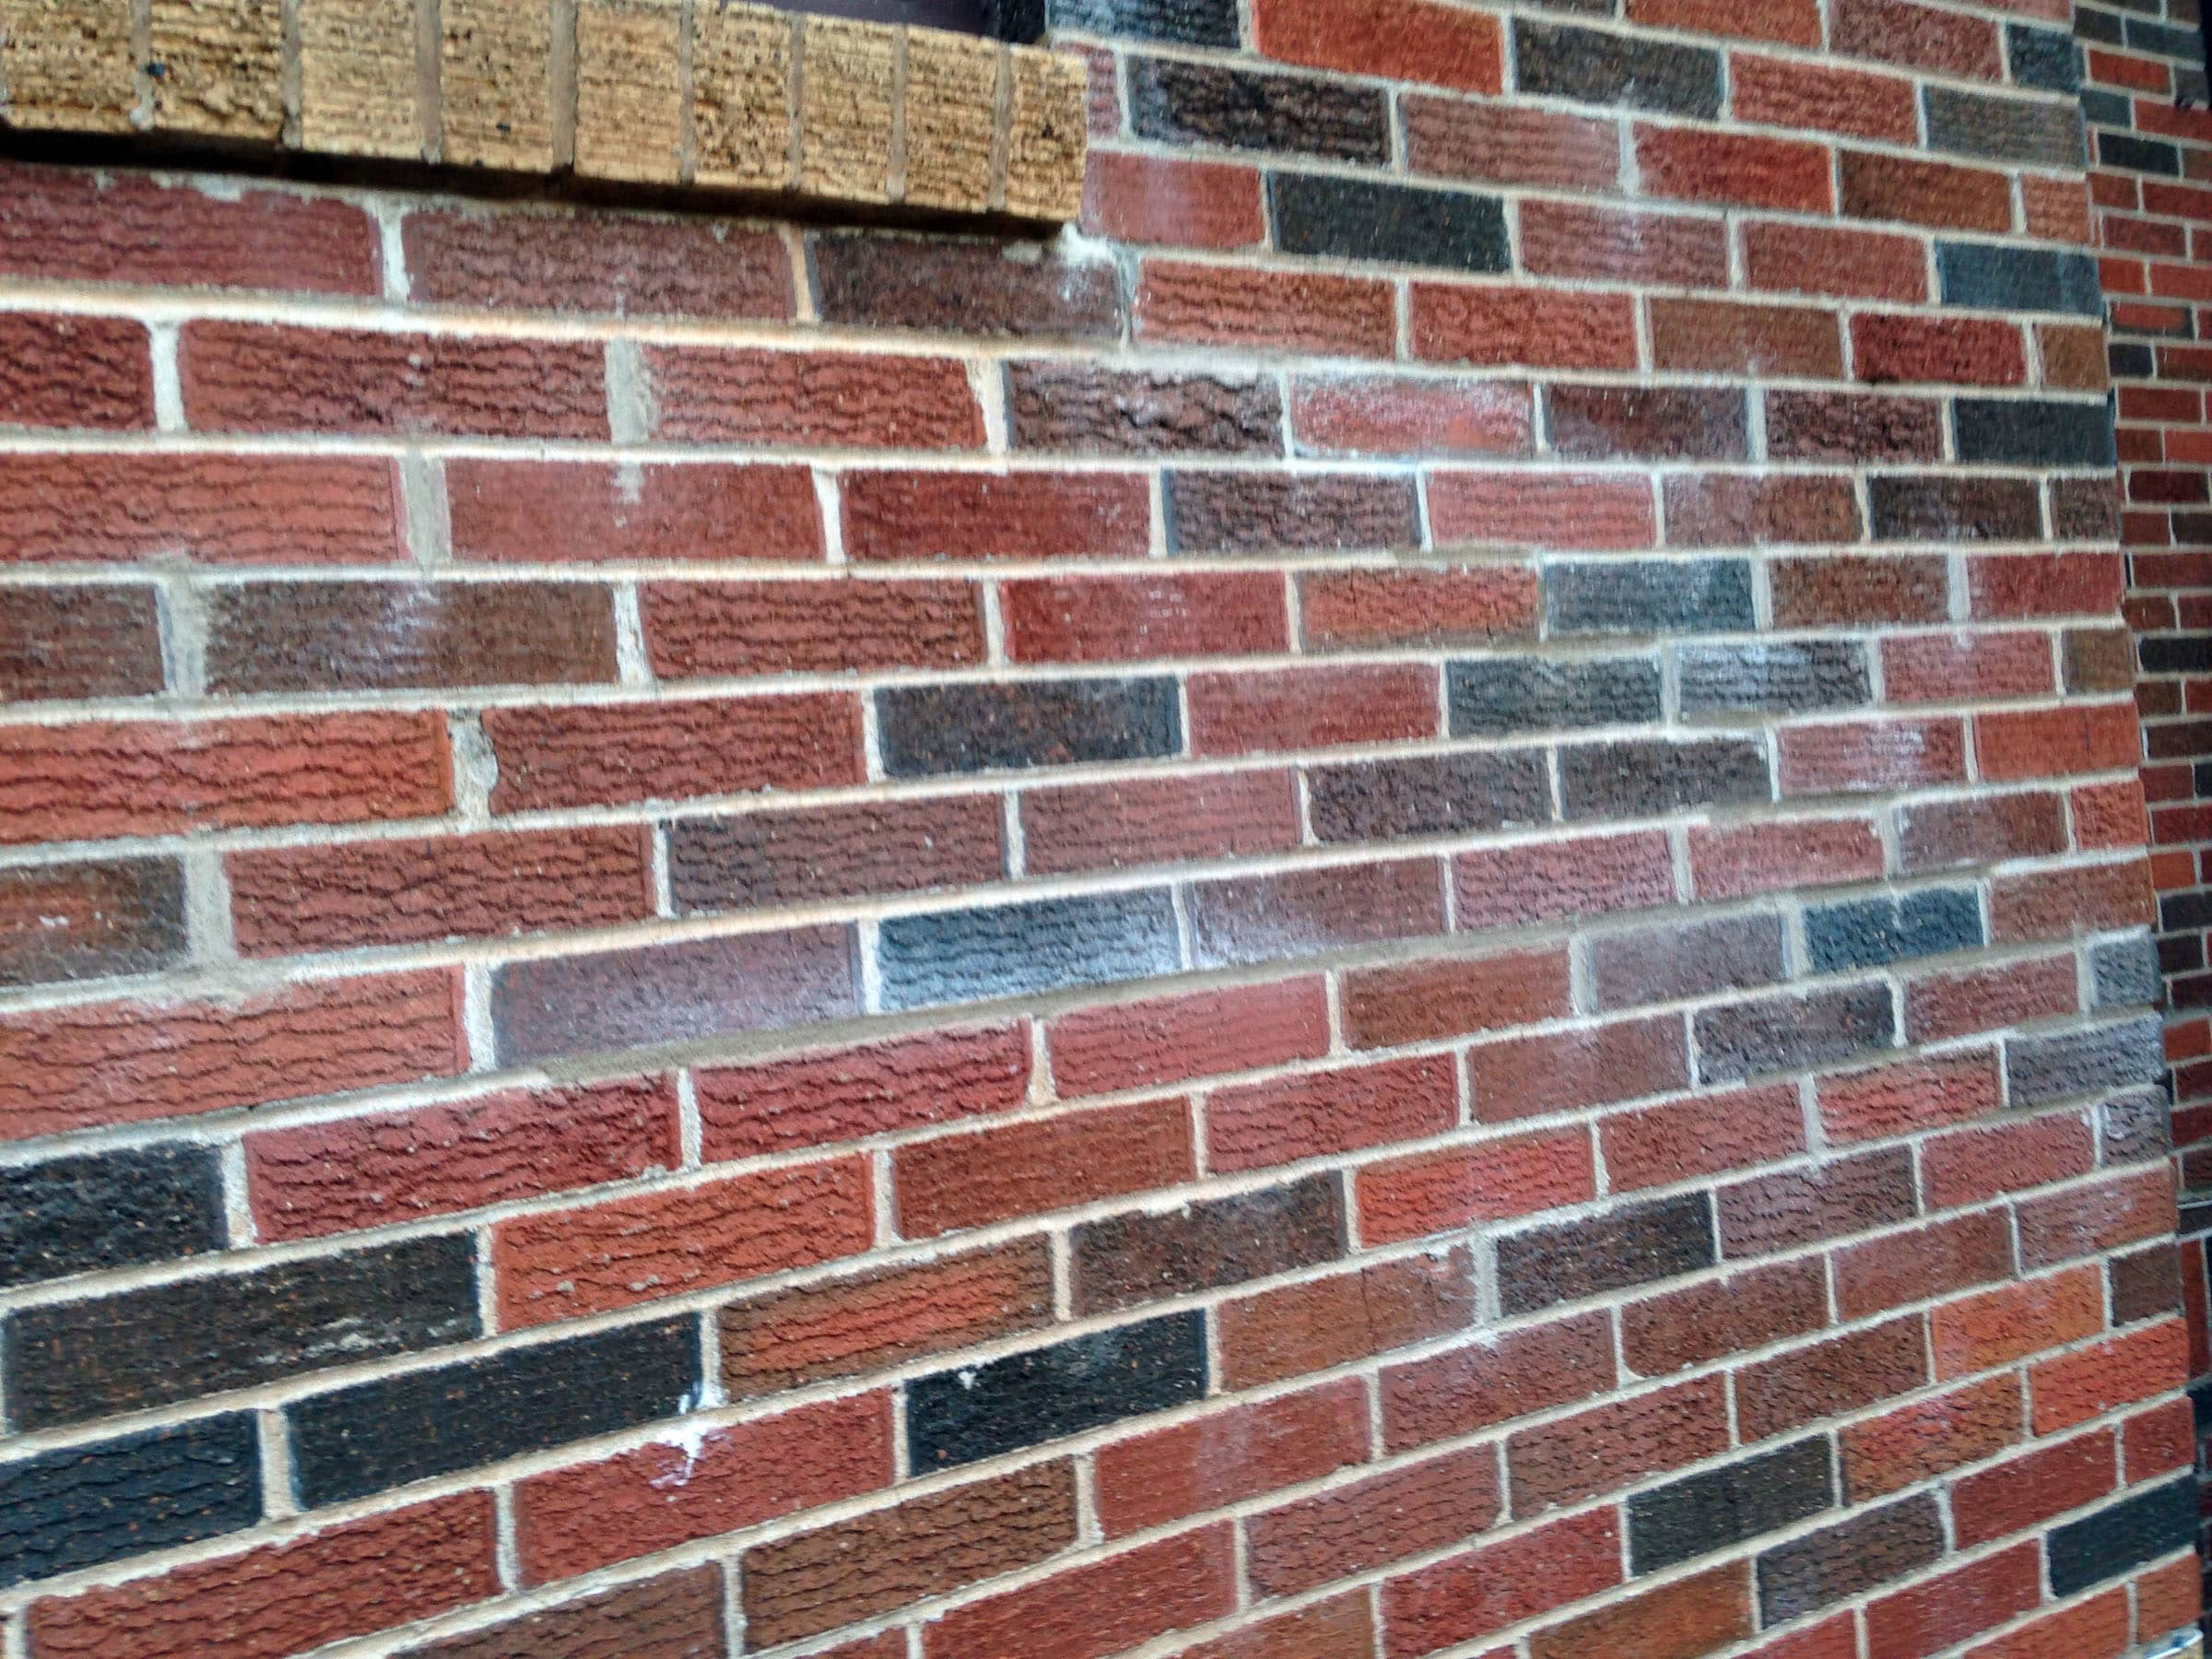 How To Clean Up Mortar Stains On Brick The Washington Post